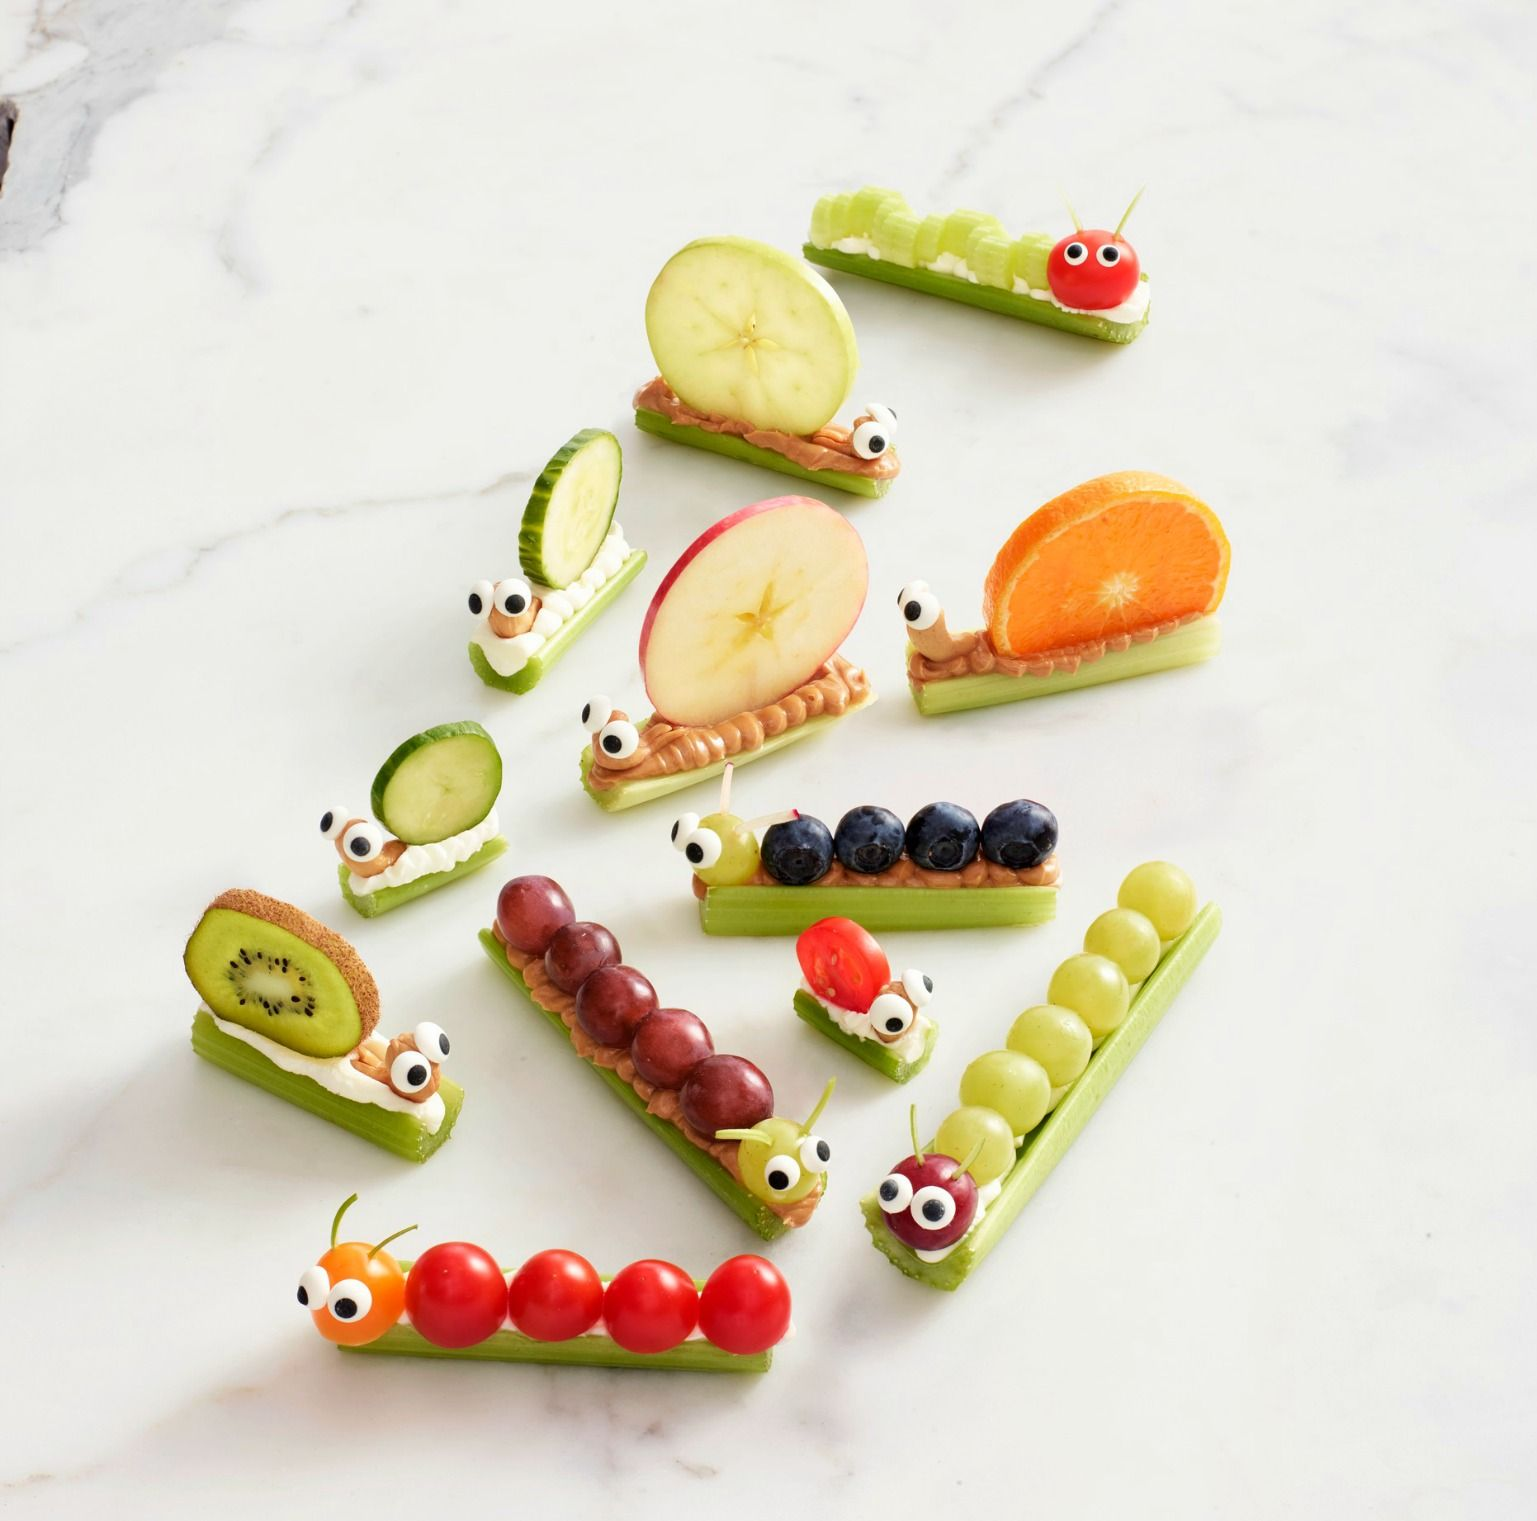 Best Celery Snails Caterpillars Snack Recipes For Kids Womansday Com